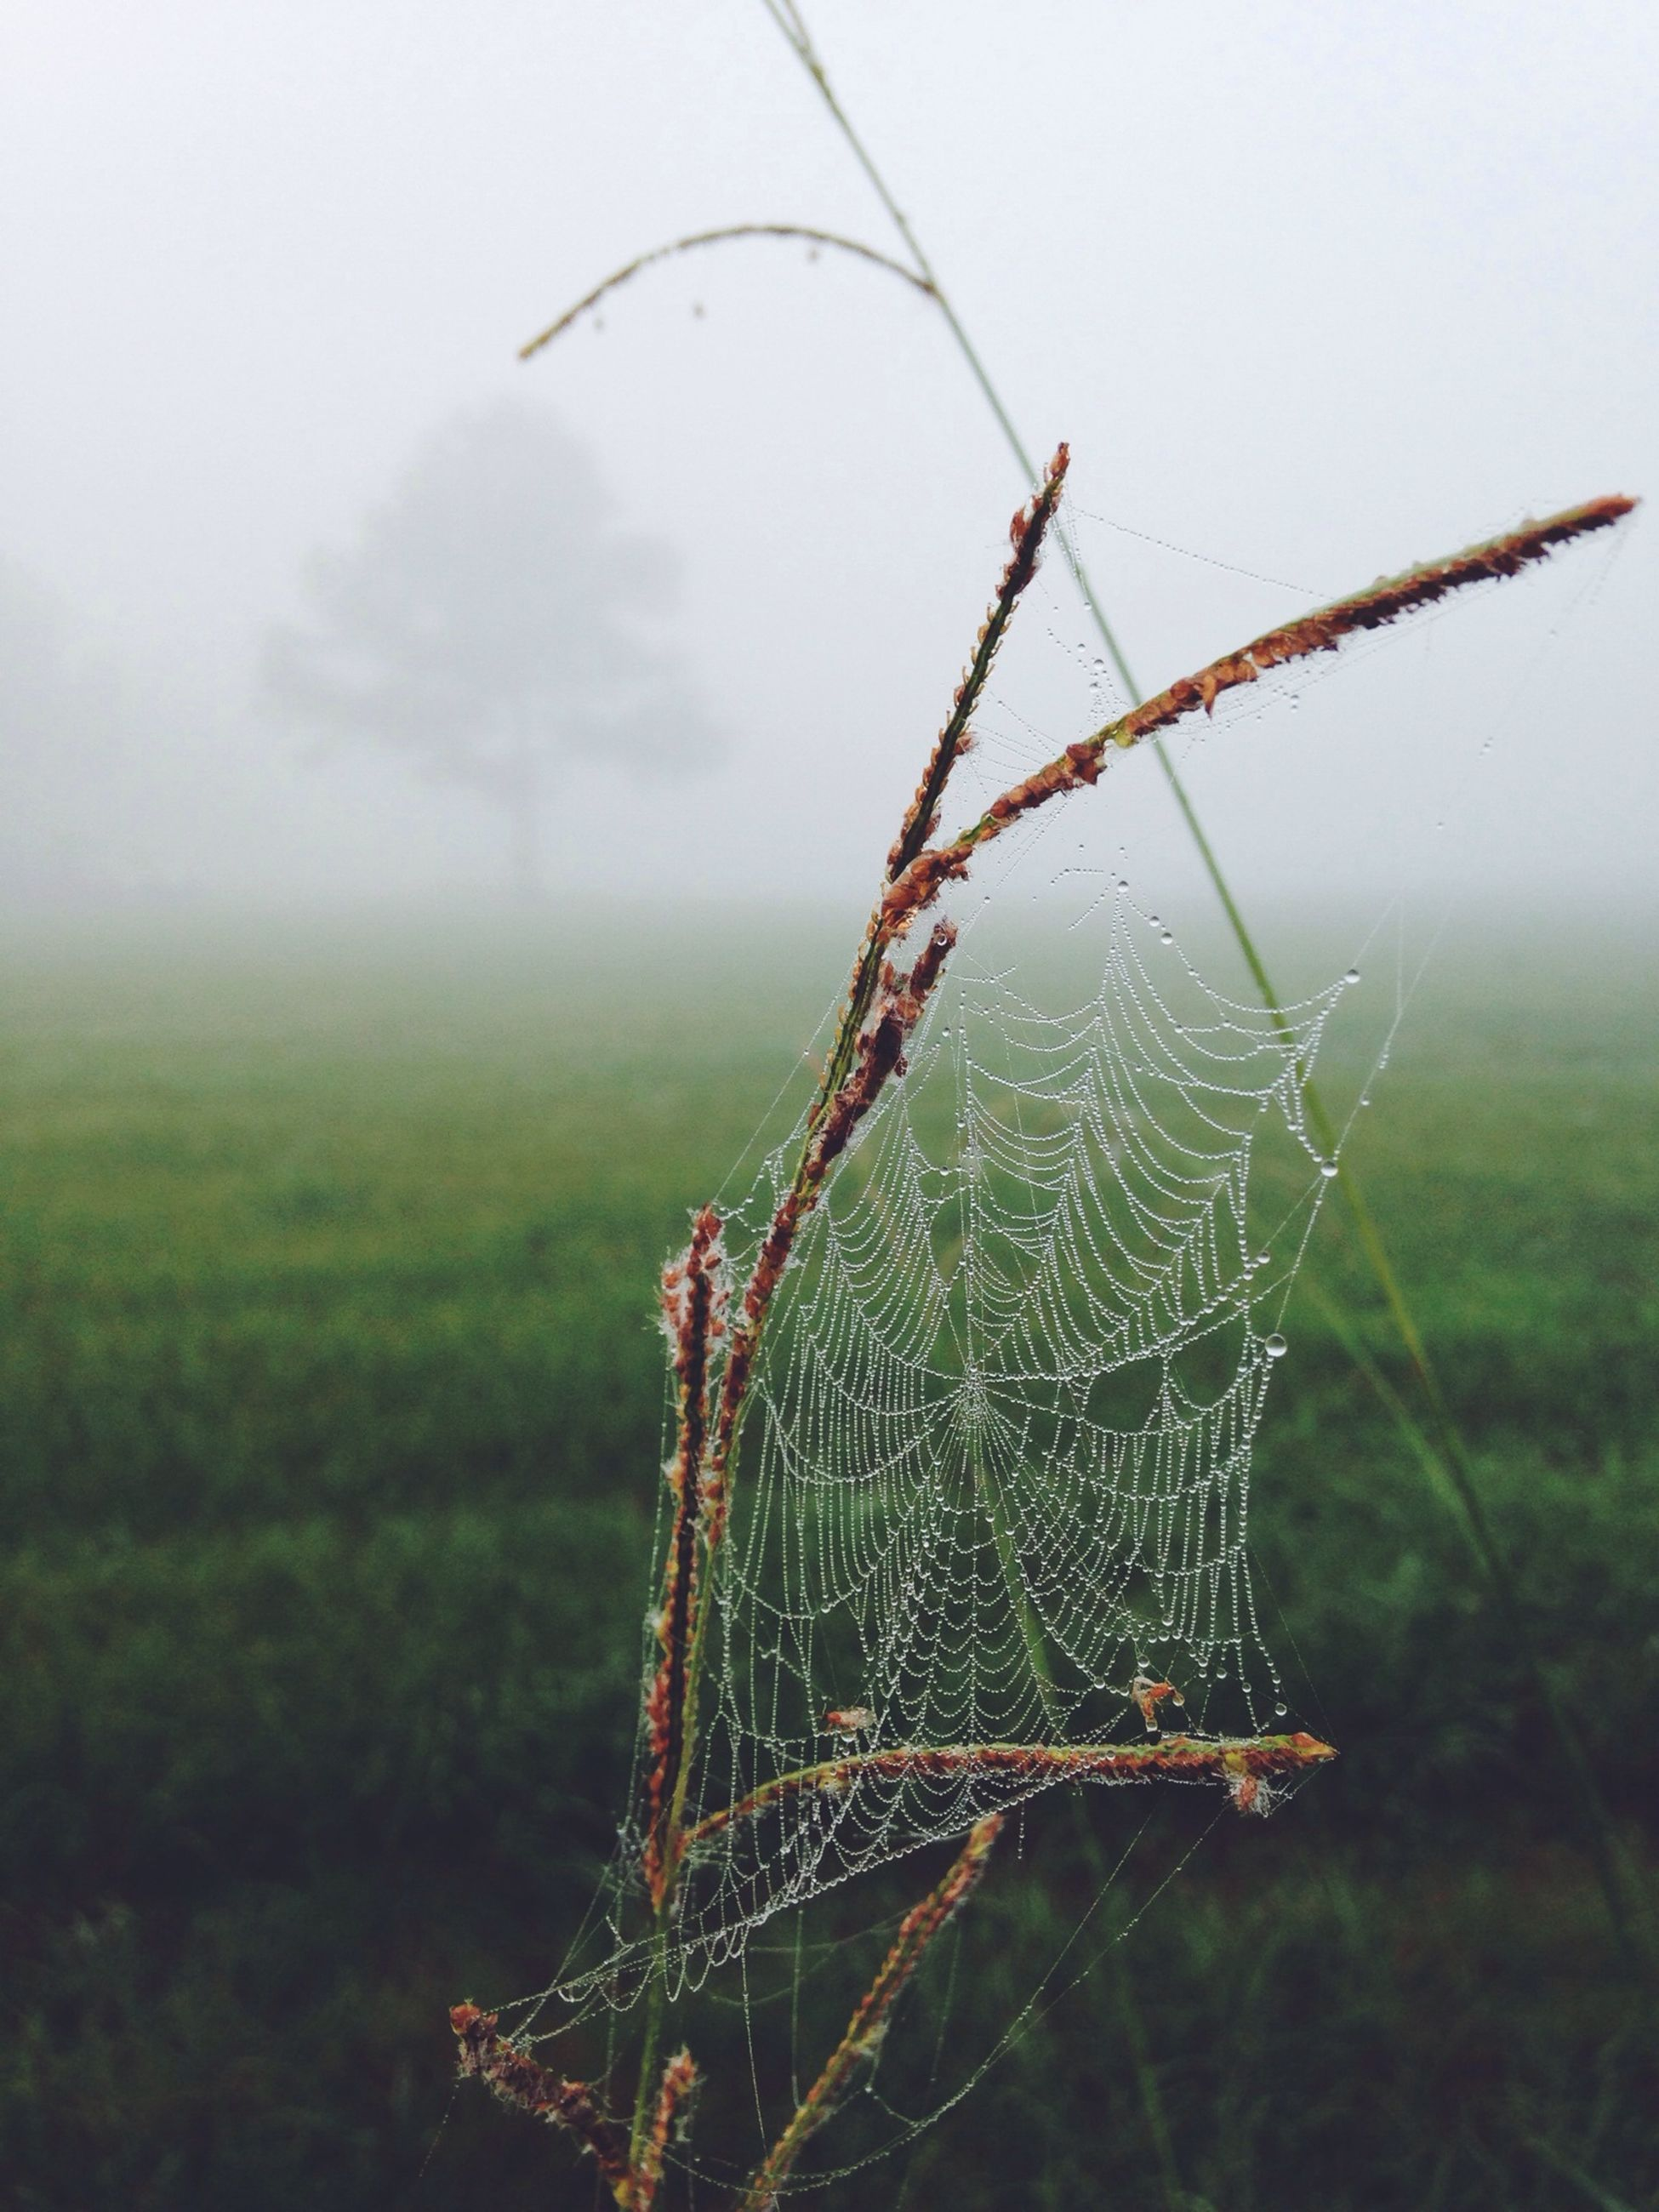 focus on foreground, nature, weather, drop, plant, tranquility, growth, close-up, fog, foggy, green color, beauty in nature, spider web, field, grass, sky, day, wet, water, outdoors